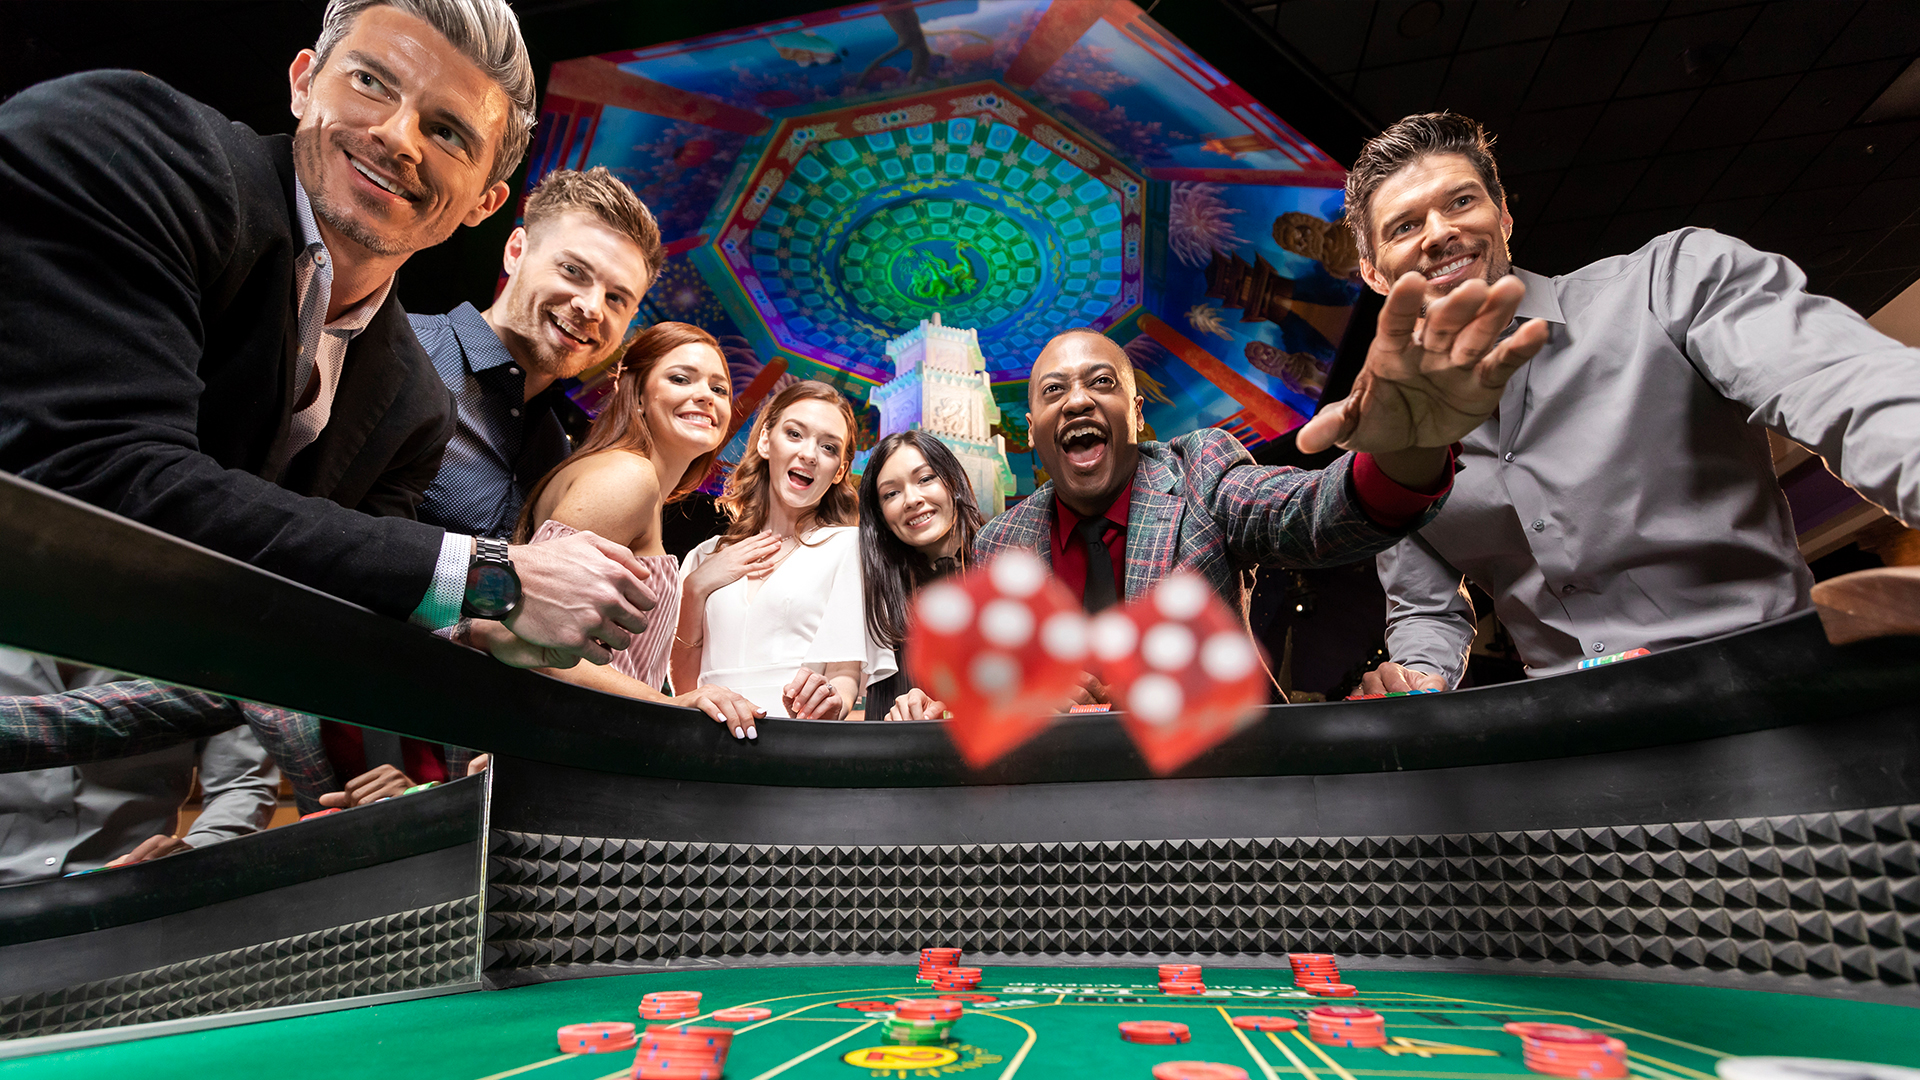 Care: Gambling becomes a problem